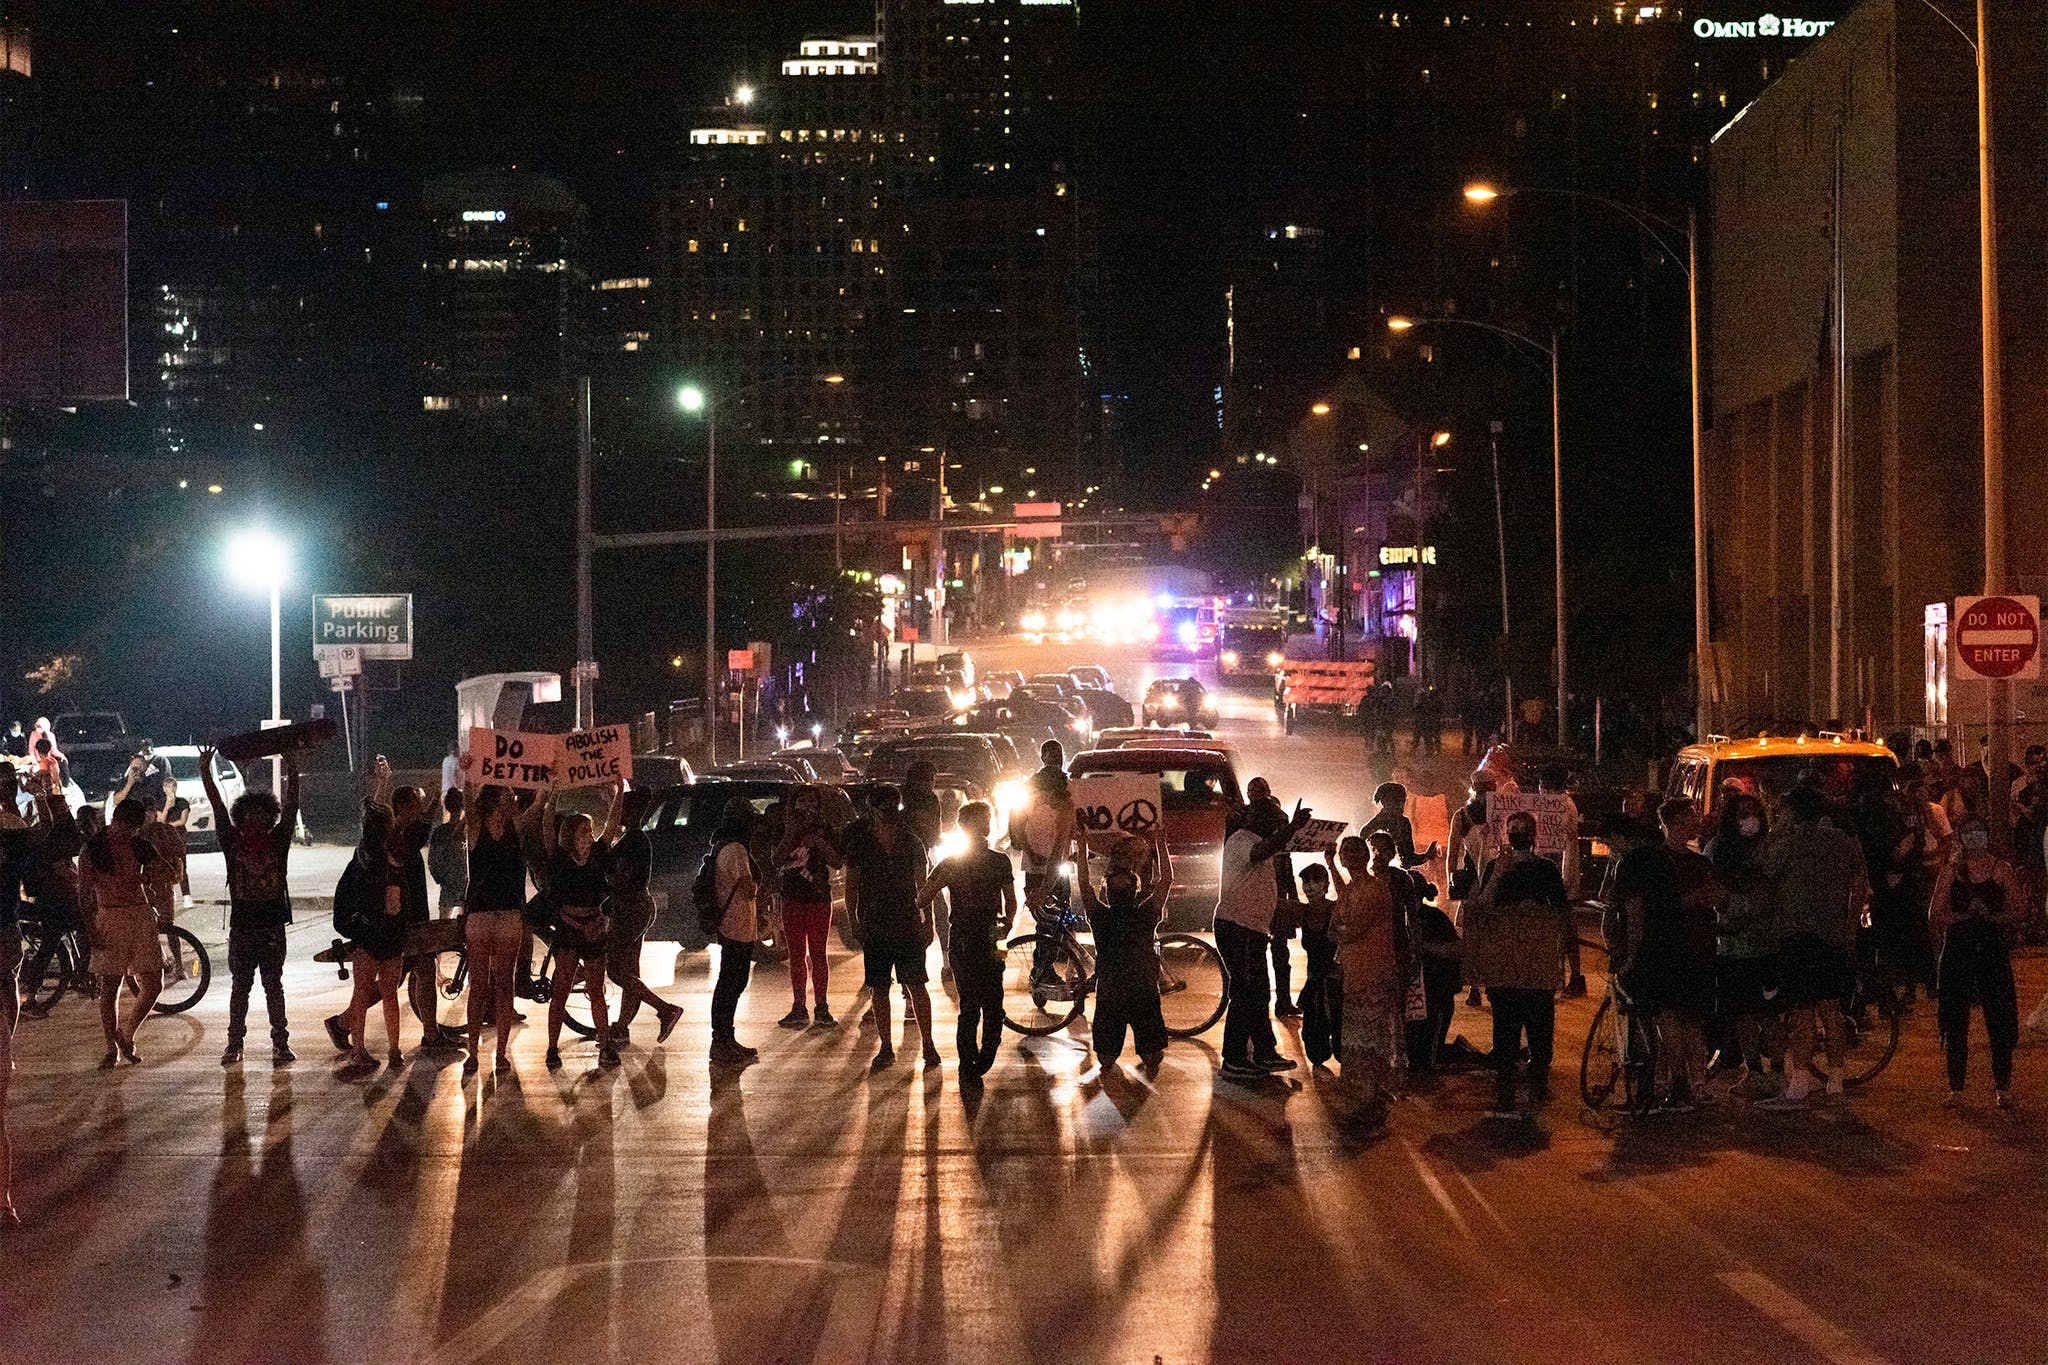 Protesters kneel while blocking the intersection of 7th Street and I-35 in front of police headquarters in Austin on May 30, 2020.